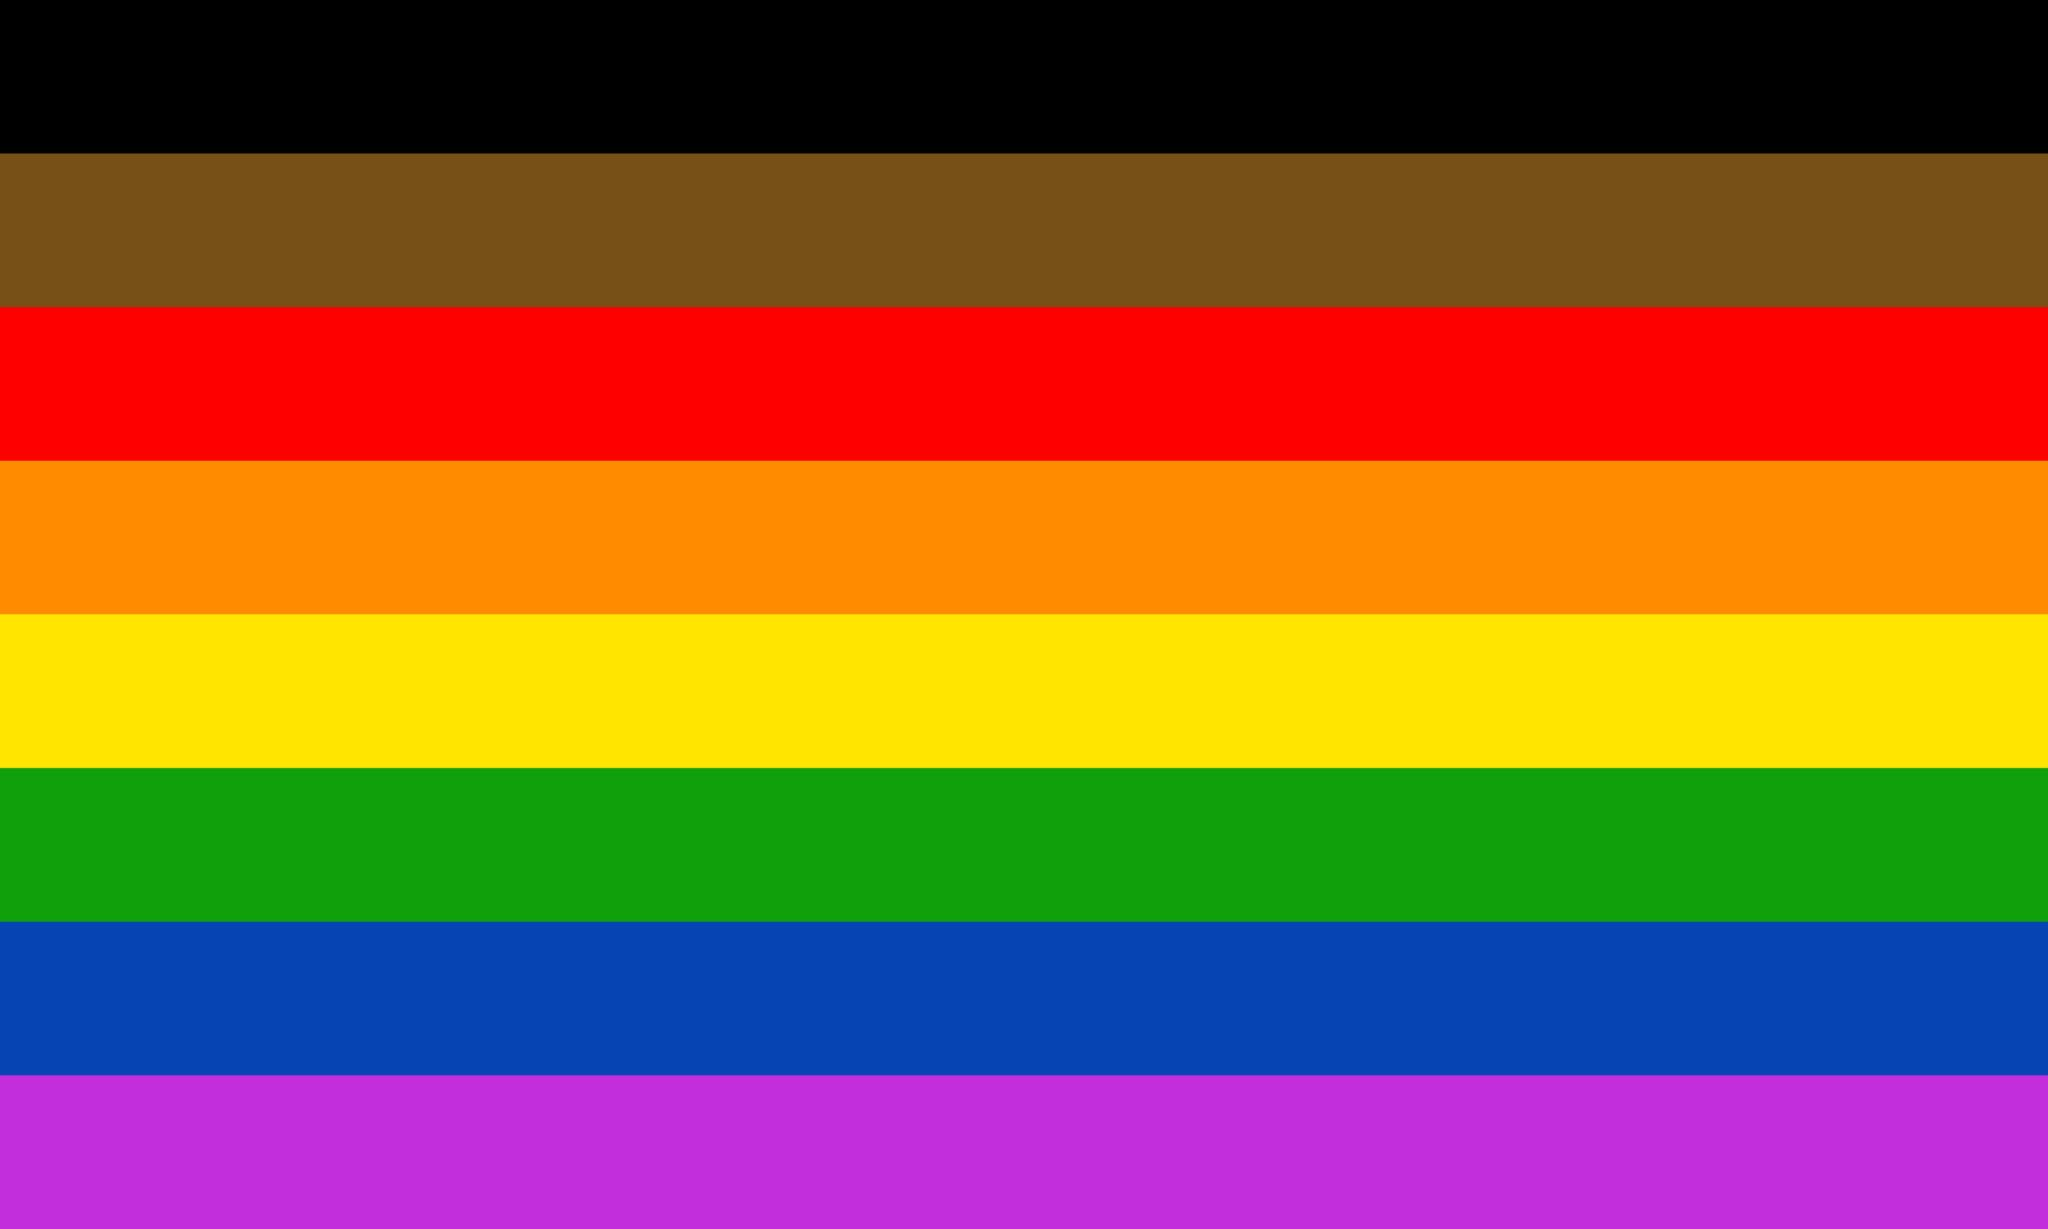 The city of Philadelphia's new LGBT Pride flag, which includes a band of brown and a band of black at the top of the traditional rainbow stripes.